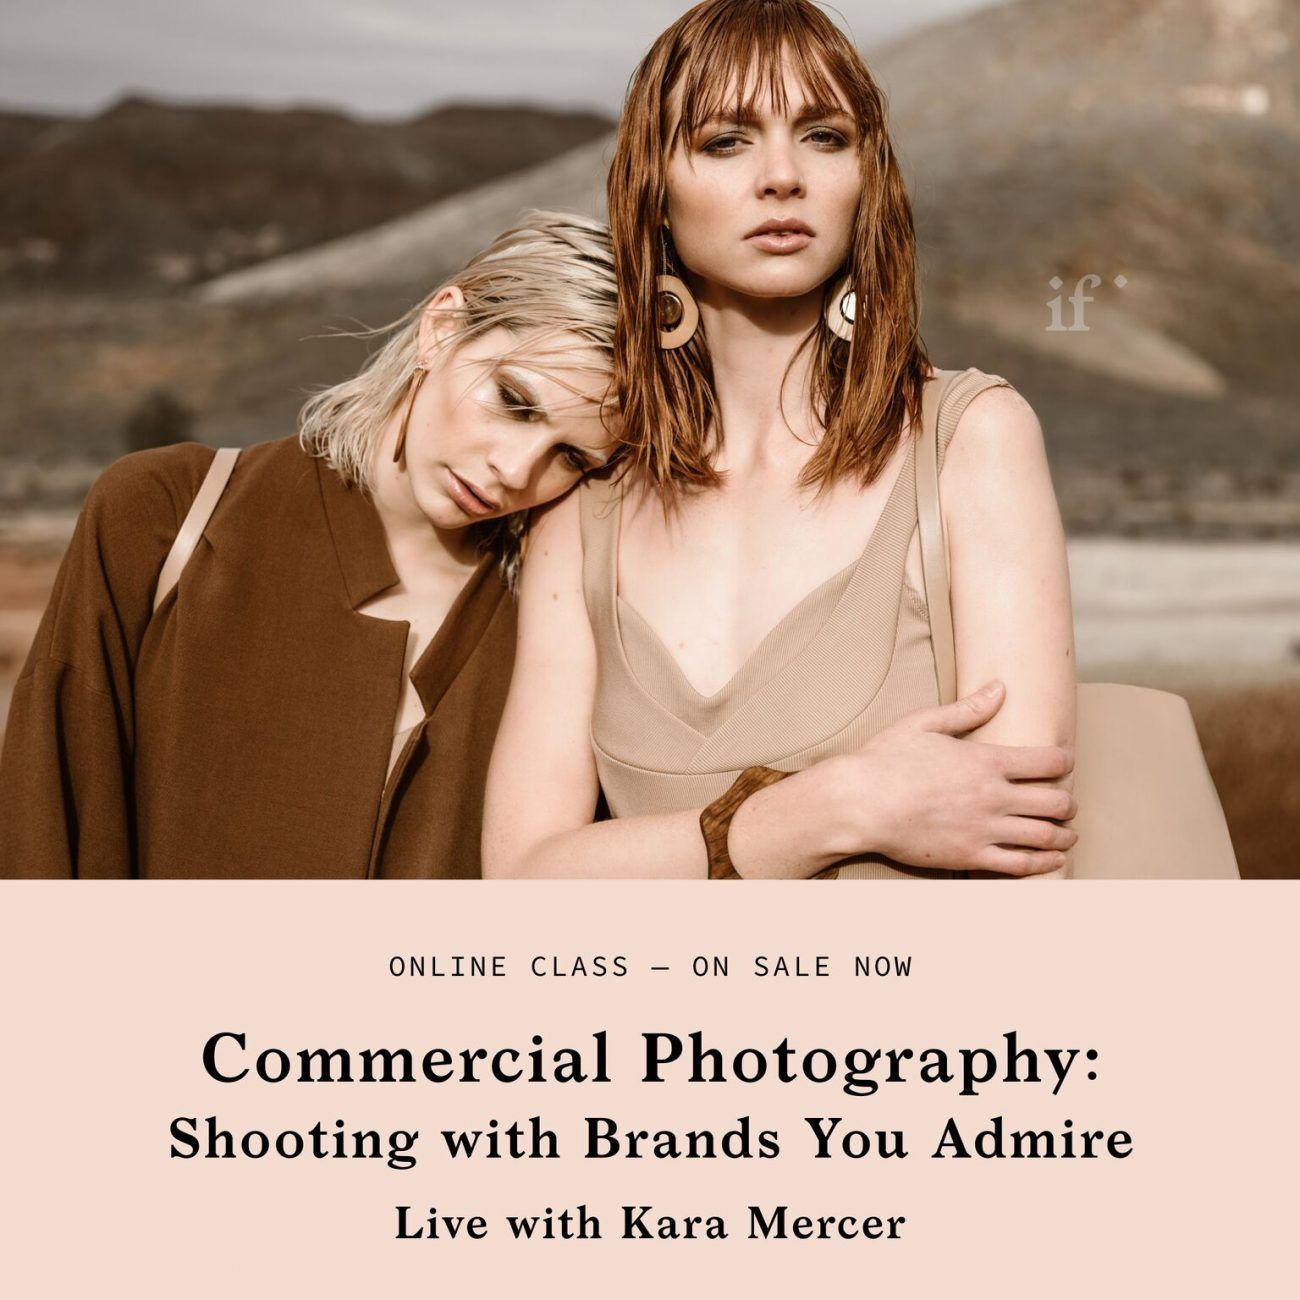 Commercial Photography with Kara Mercer From If I Made